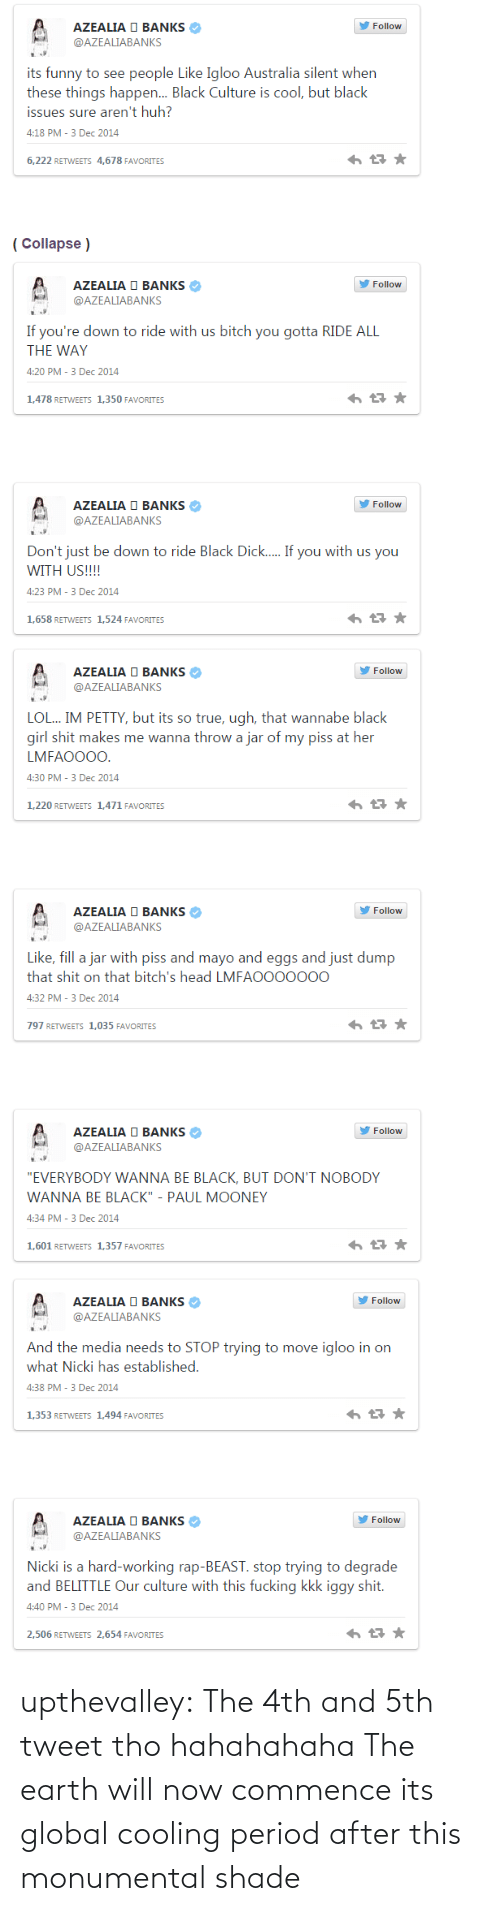 "Mooney: AZEALIA O BANKS  Follow  @AZEALIABANKS  its funny to see people Like Igloo Australia silent when  these things happen. Black Culture is cool, but black  issues sure aren't huh?  4:18 PM - 3 Dec 2014  6,222 RETWEETS 4,678 FAVORITES  ( Collapse )  AZEALIA O BANKS  Follow  @AZEALIABANKS  If you're down to ride with us bitch you gotta RIDE ALL  THE WAY  4:20 PM - 3 Dec 2014  1,478 RETWEETS 1,350 FAVORITES  AZEALIA O BANKS  Follow  @AZEALIABANKS  Don't just be down to ride Black Dick.. If you with us you  WITH US!!!!  4:23 PM - 3 Dec 2014  1,658 RETWEETS 1,524 FAVORITES   Follow  AZEALIA O BANKS  @AZEALIABANKS  LOL.. IM PETTY, but its so true, ugh, that wannabe black  girl shit makes me wanna throw a jar of my piss at her  LMFAO000.  4:30 PM - 3 Dec 2014  1,220 RETWEETS 1,471 FAVORITES  AZEALIA O BANKS  Follow  @AZEALIABANKS  Like, fill a jar with piss and mayo and eggs and just dump  that shit on that bitch's head LMFAO000000  4:32 PM - 3 Dec 2014  797 RETWEETS 1,035 FAVORITES  AZEALIA O BANKS  Follow  @AZEALIABANKS  ""EVERYBODY WANNA BE BLACK, BUT DON'T NOBODY  WANNA BE BLACK"" - PAUL MOONEY  4:34 PM - 3 Dec 2014  1,601 RETWEETS 1,357 FAVORITES   AZEALIA O BANKS  Follow  @AZEALIABANKS  And the media needs to STOP trying to move igloo in on  what Nicki has established.  4:38 PM - 3 Dec 2014  1,353 RETWEETS 1,494 FAVORITES  AZEALIA O BANKS  Follow  @AZEALIABANKS  Nicki is a hard-working rap-BEAST. stop trying to degrade  and BELITTLE Our culture with this fucking kkk iggy shit.  4:40 PM - 3 Dec 2014  2,506 RETWEETS 2,654 FAVORITES upthevalley:  The 4th and 5th tweet tho hahahahaha  The earth will now commence its global cooling period after this monumental shade"